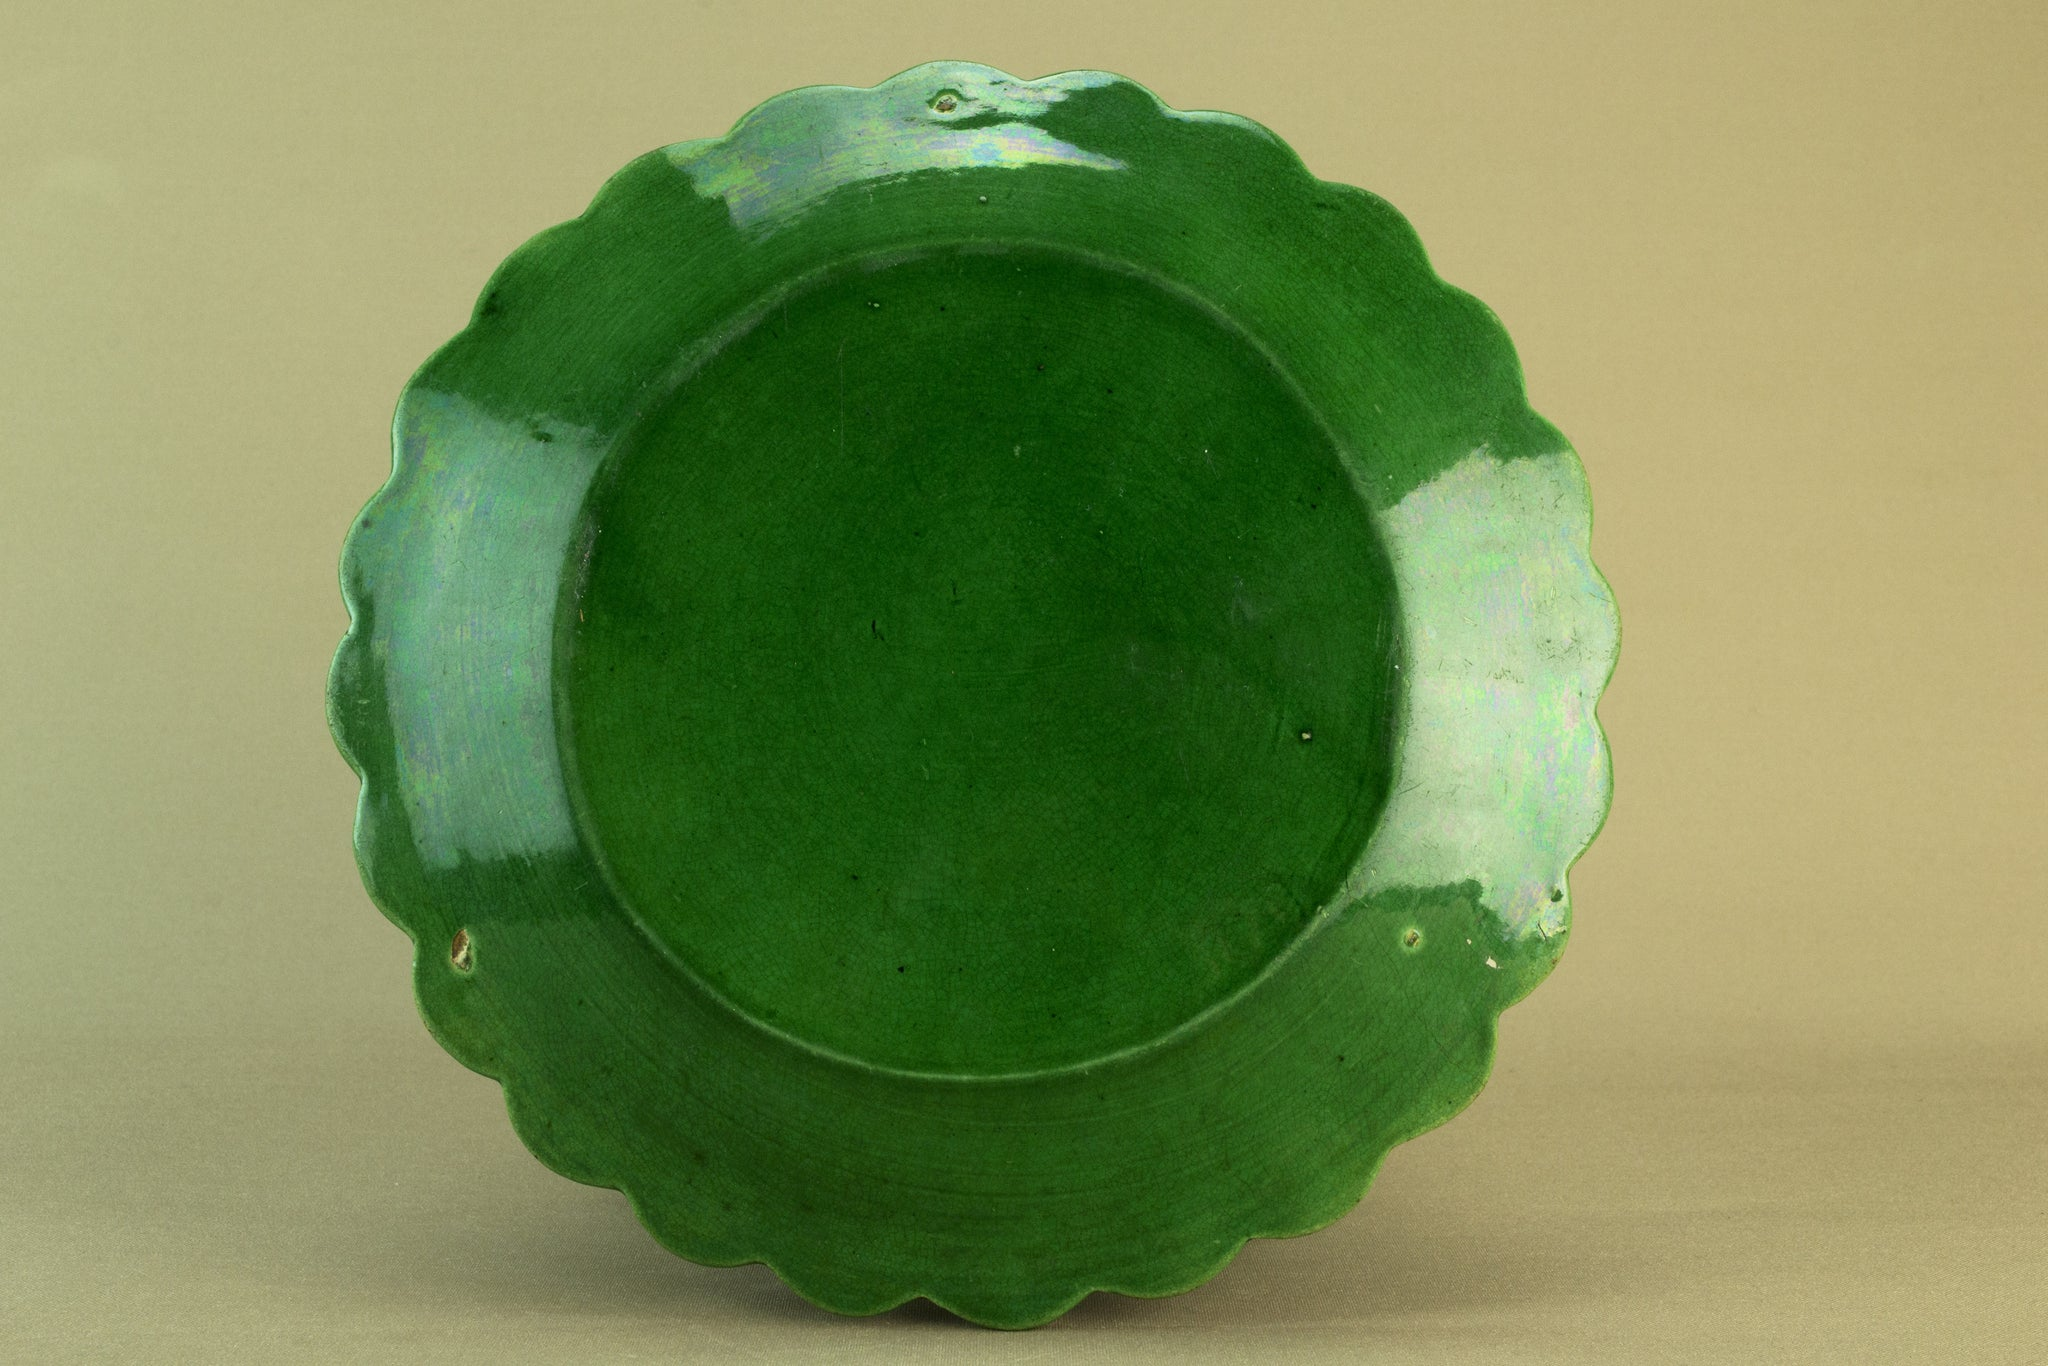 Green majolica serving dish, circa 1900 by Lavish Shoestring